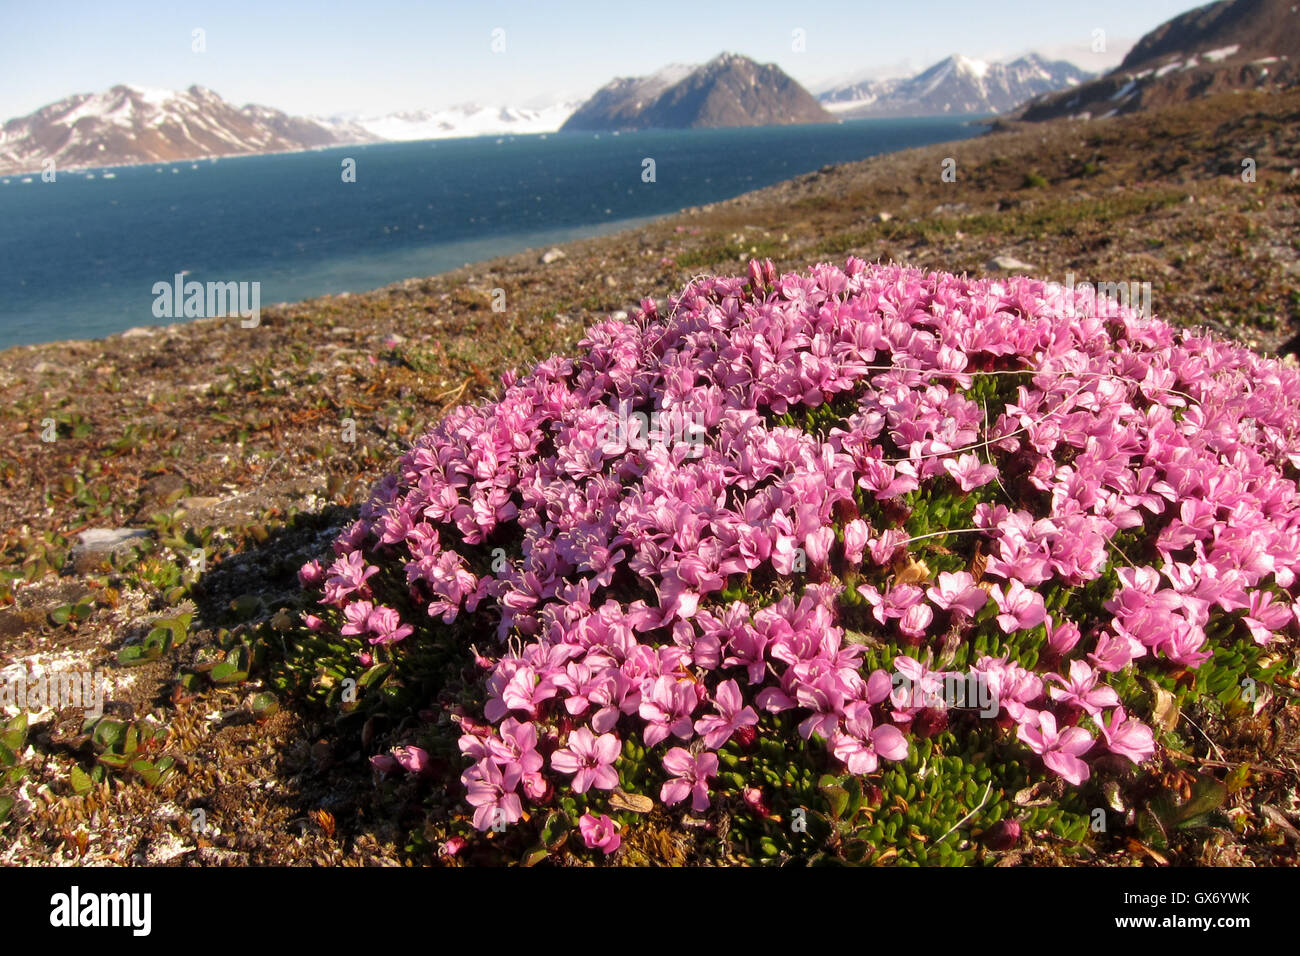 Moss campion flowers in a scenic landscape in Svalbard, Norway - Stock Image